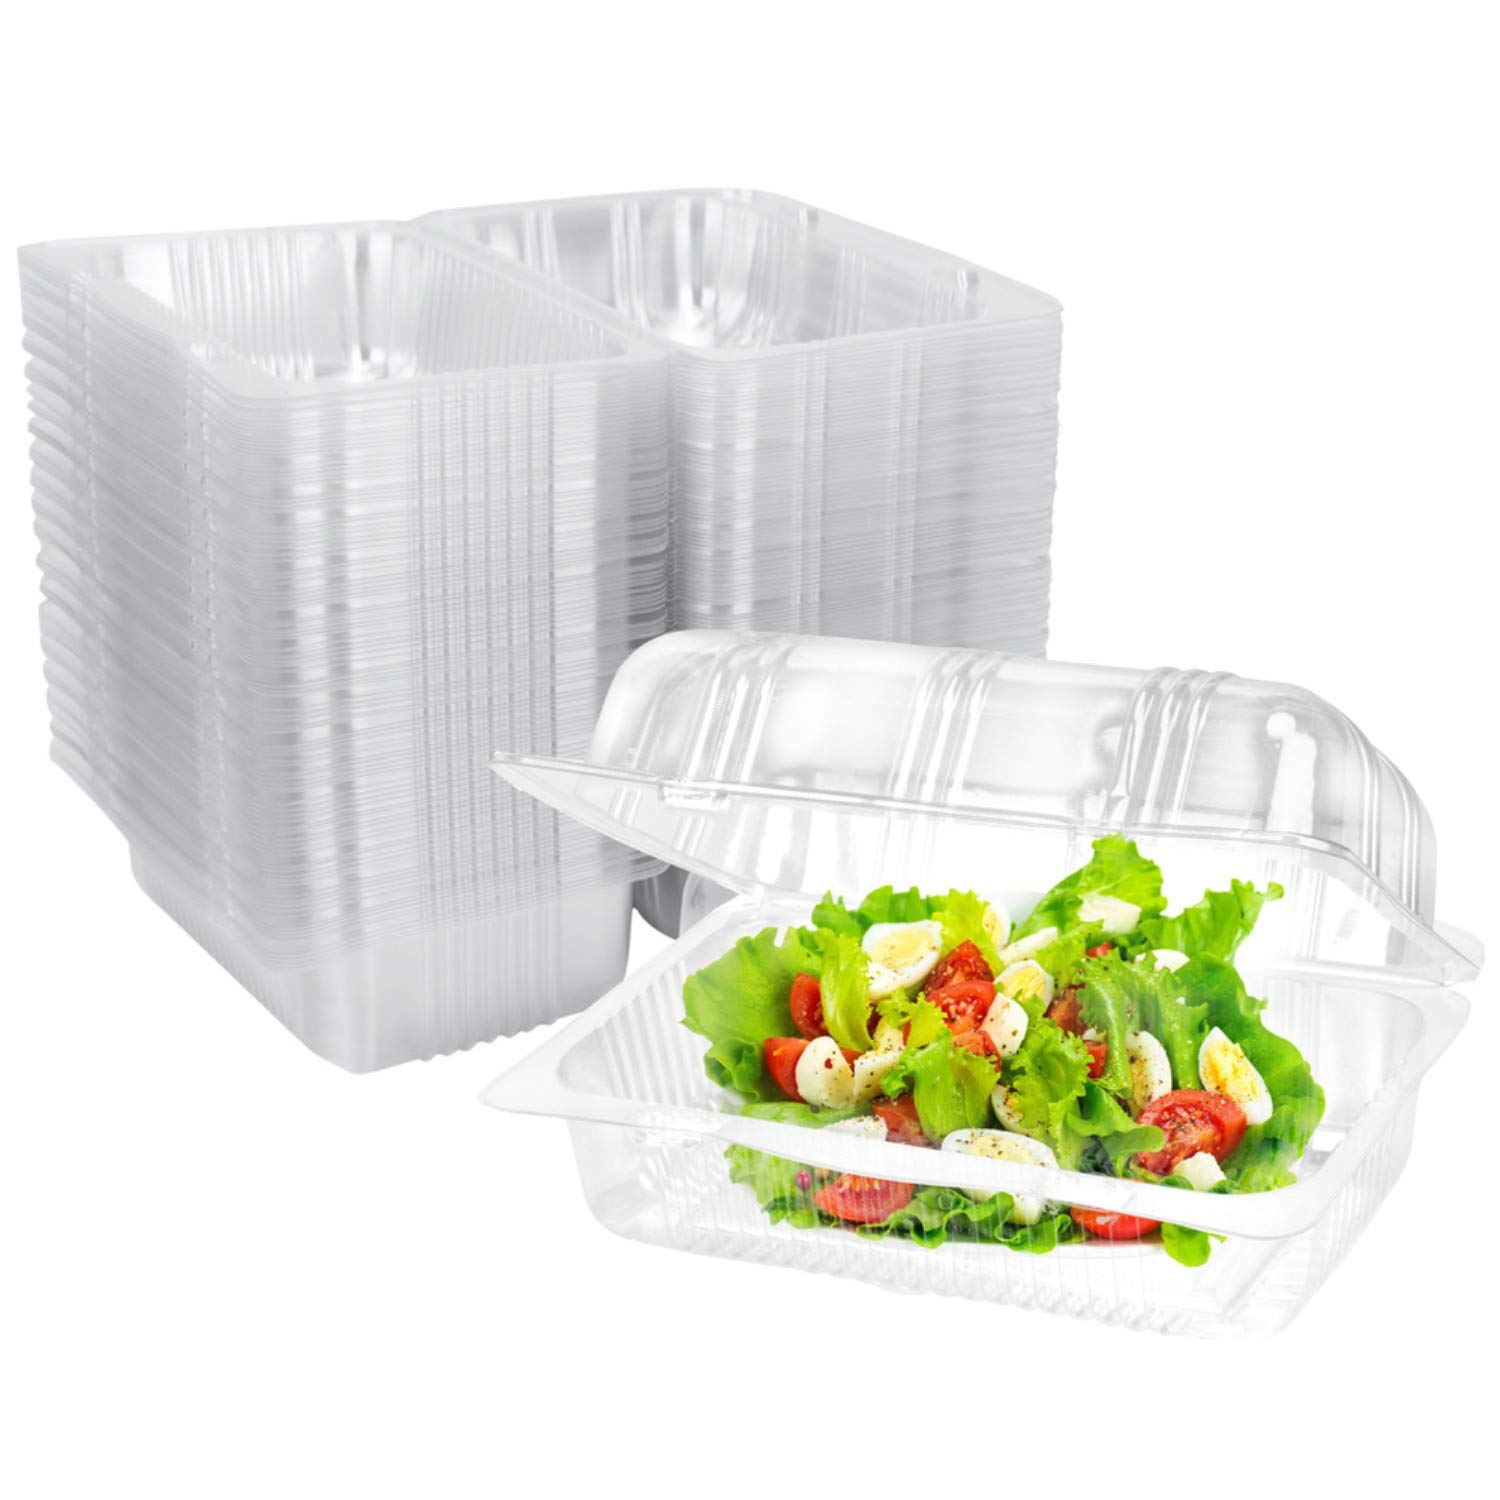 Clear Plastic Hinged Food Container 100 PCS, 6.7